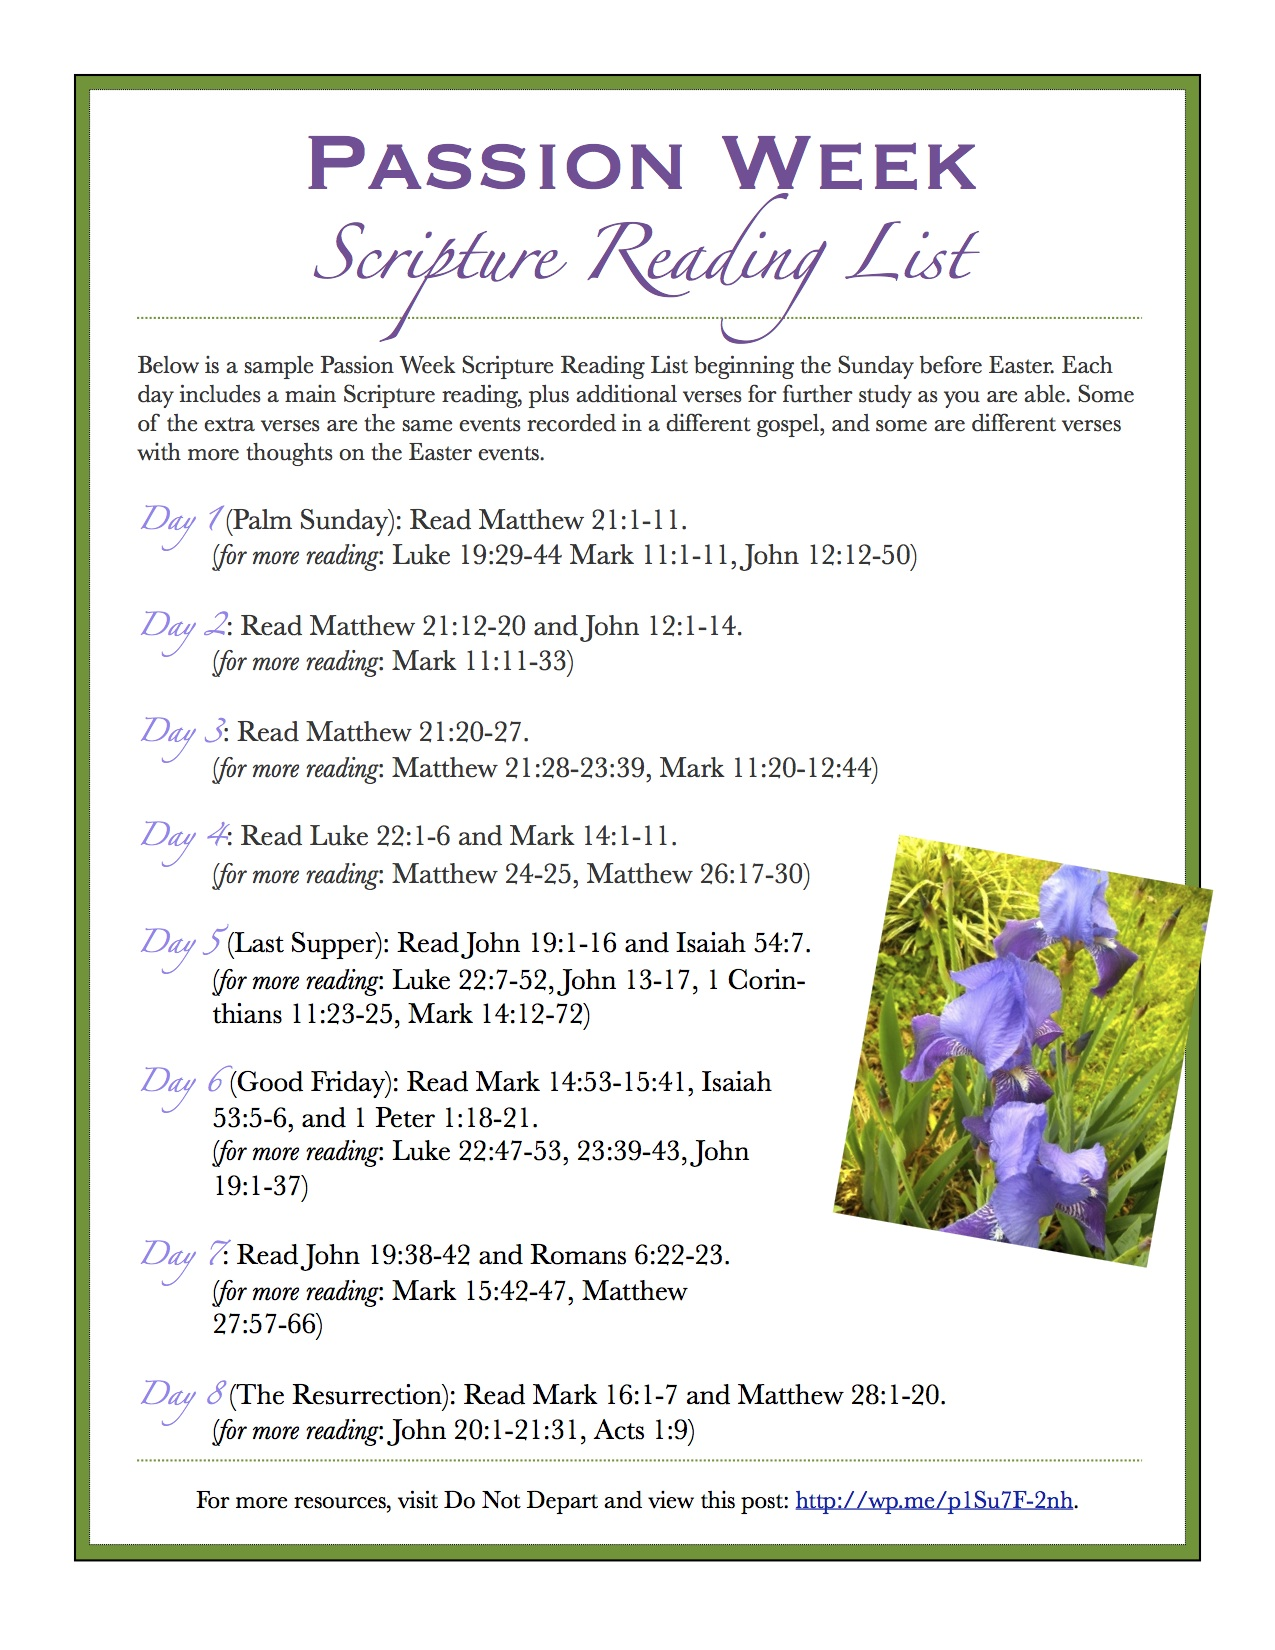 Passion Week Scripture Reading List